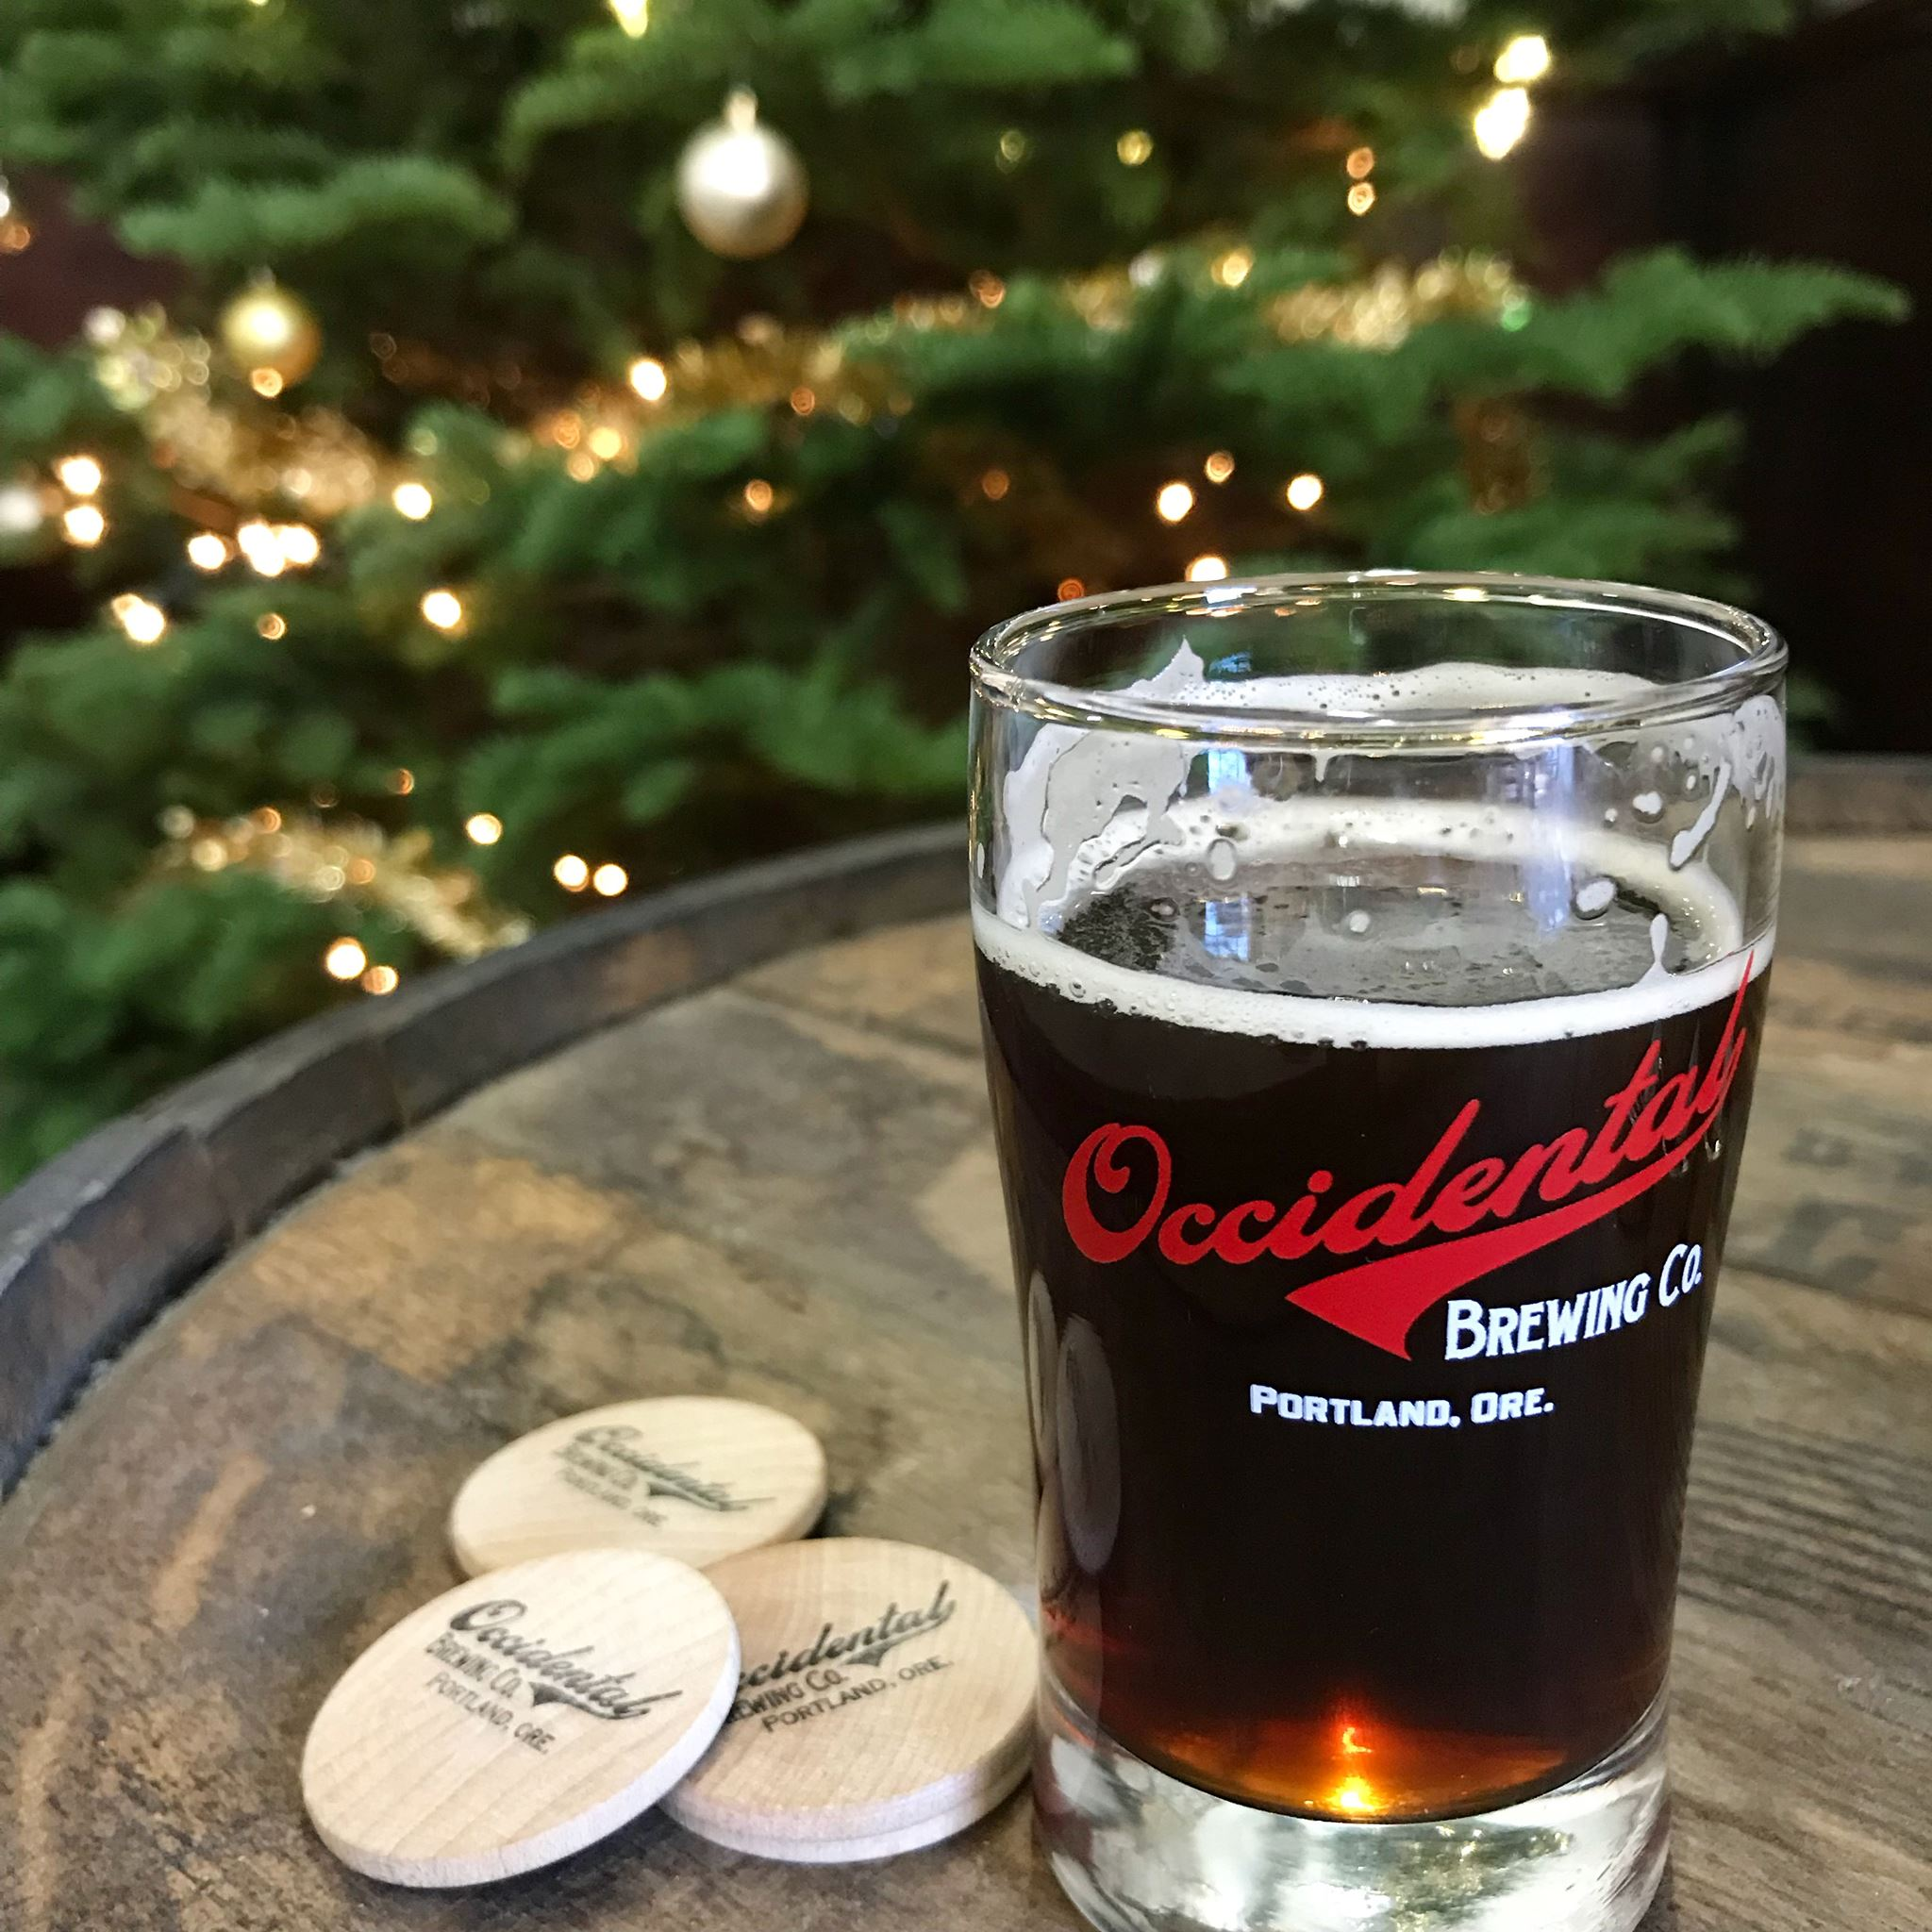 image courtesy of Occidental Brewing